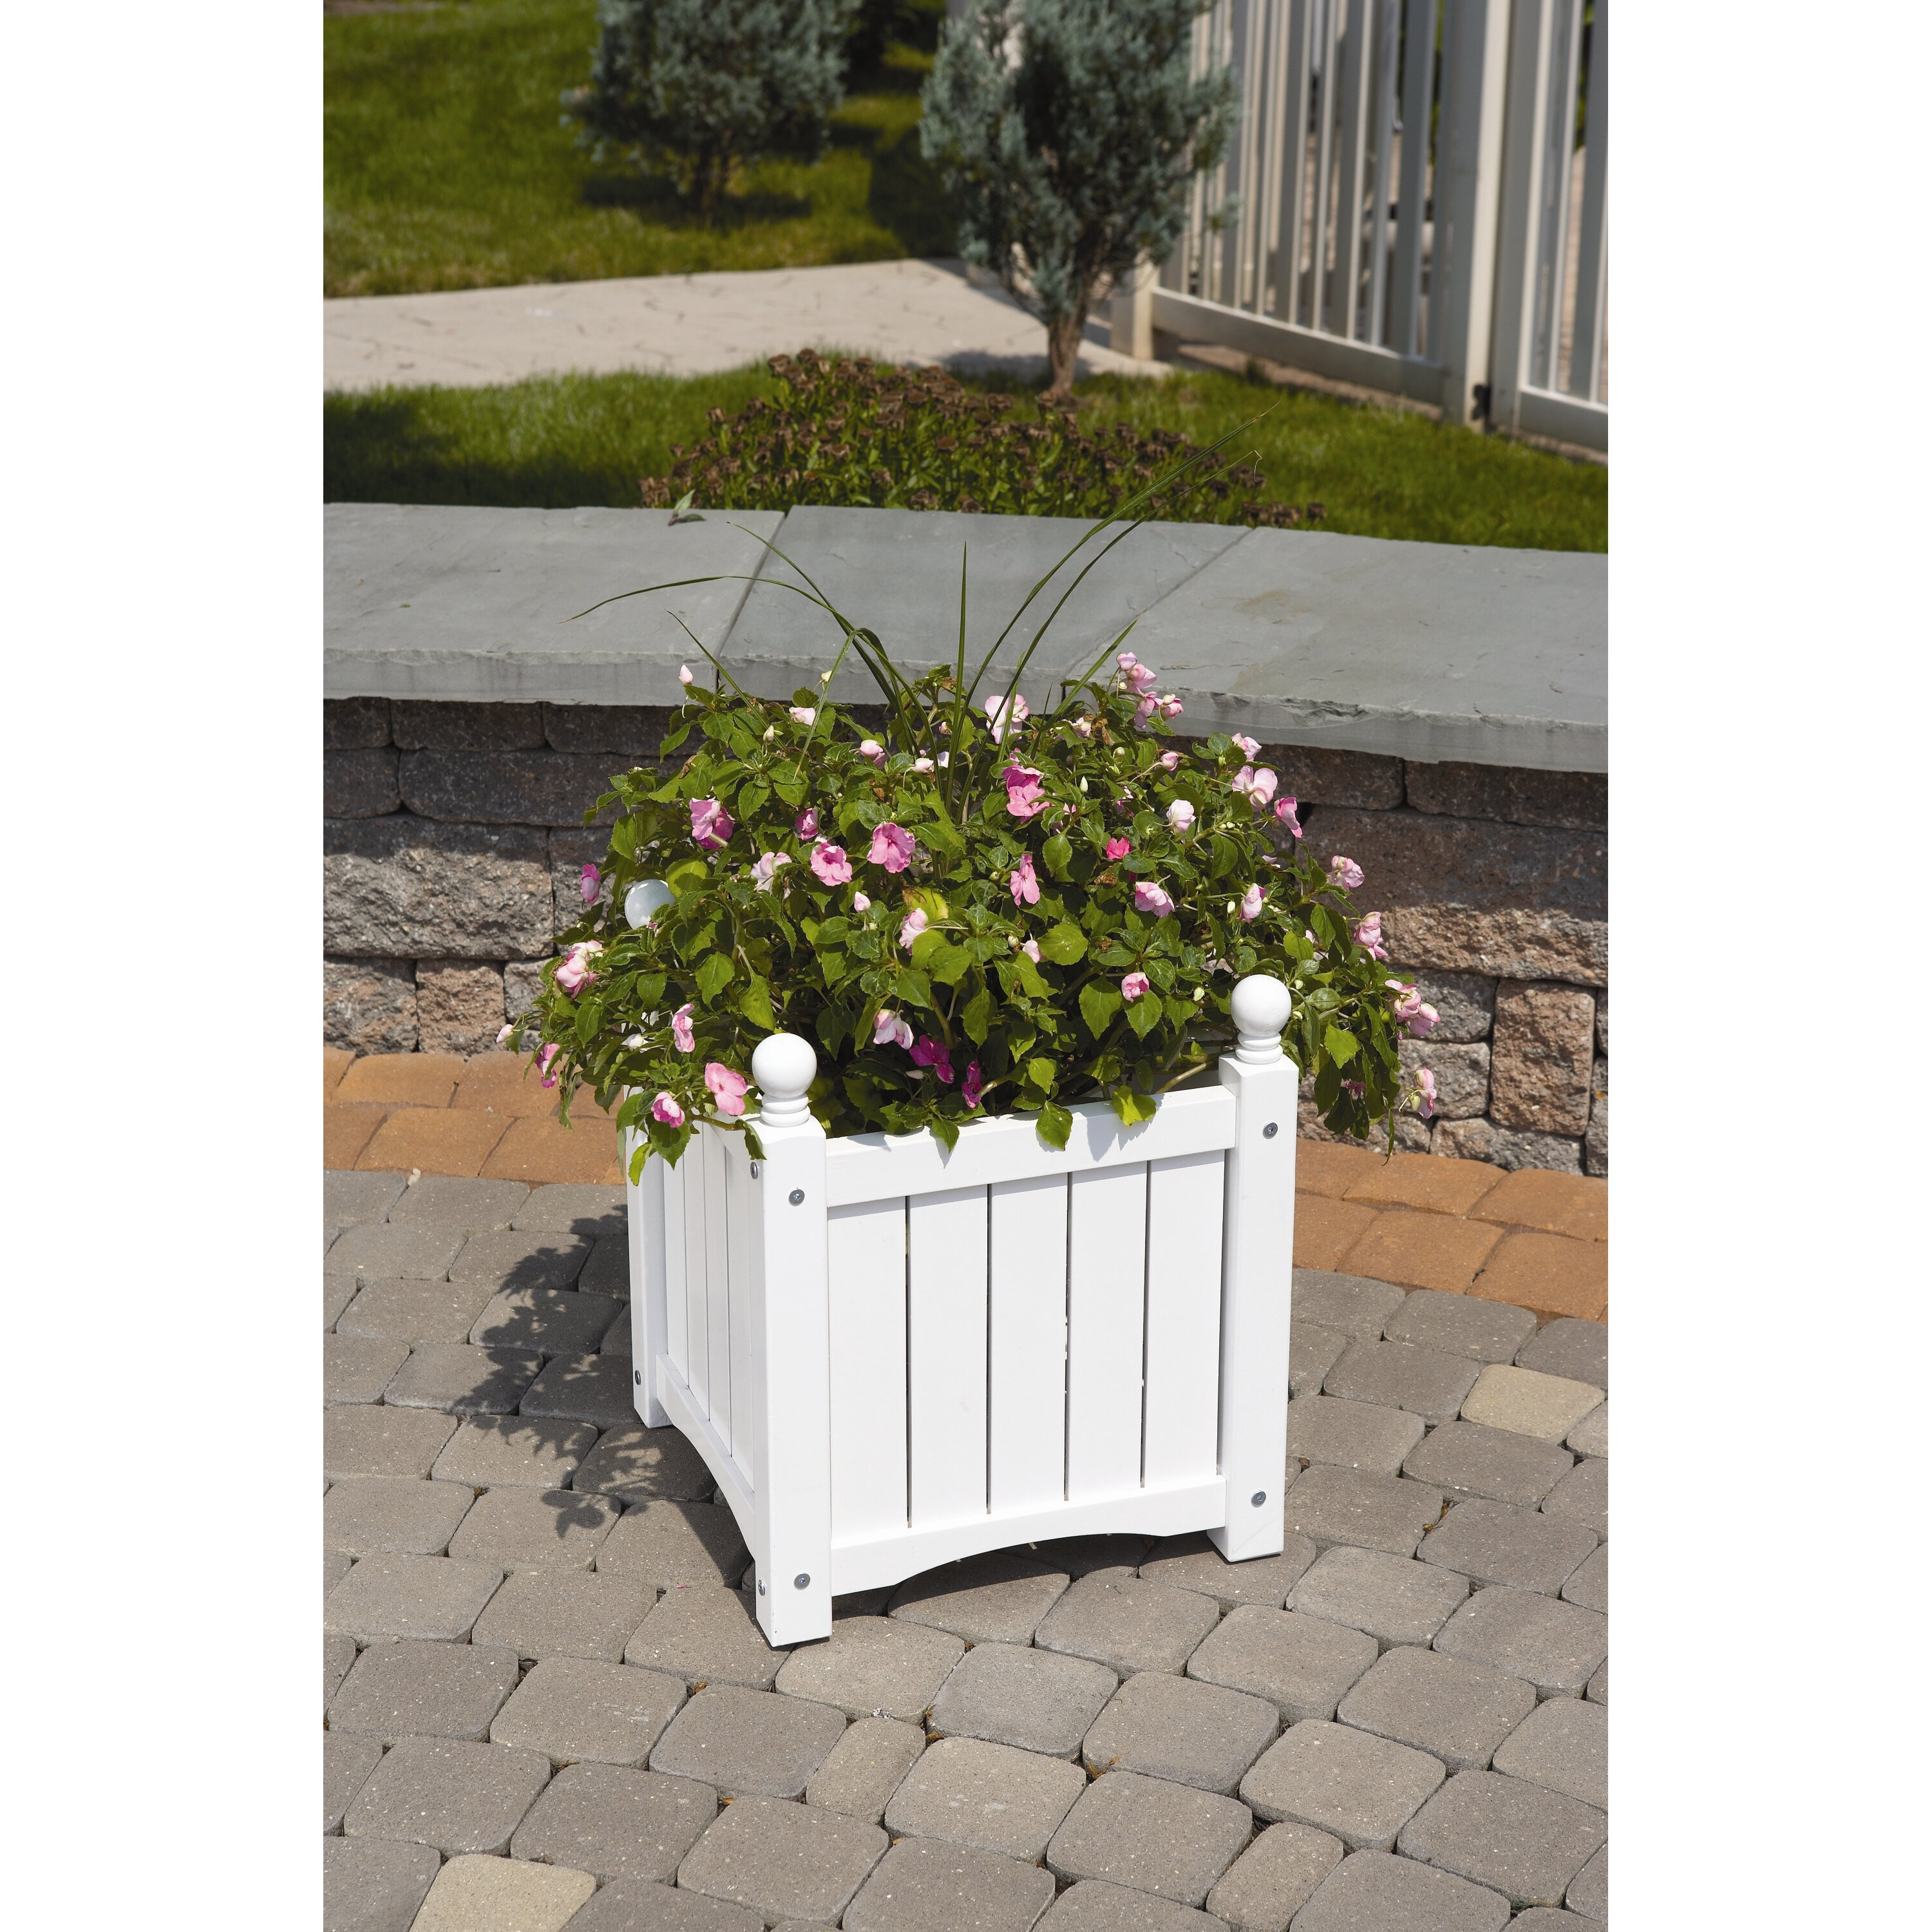 Dmc lexington square planter box reviews wayfair for Wayfair garden box